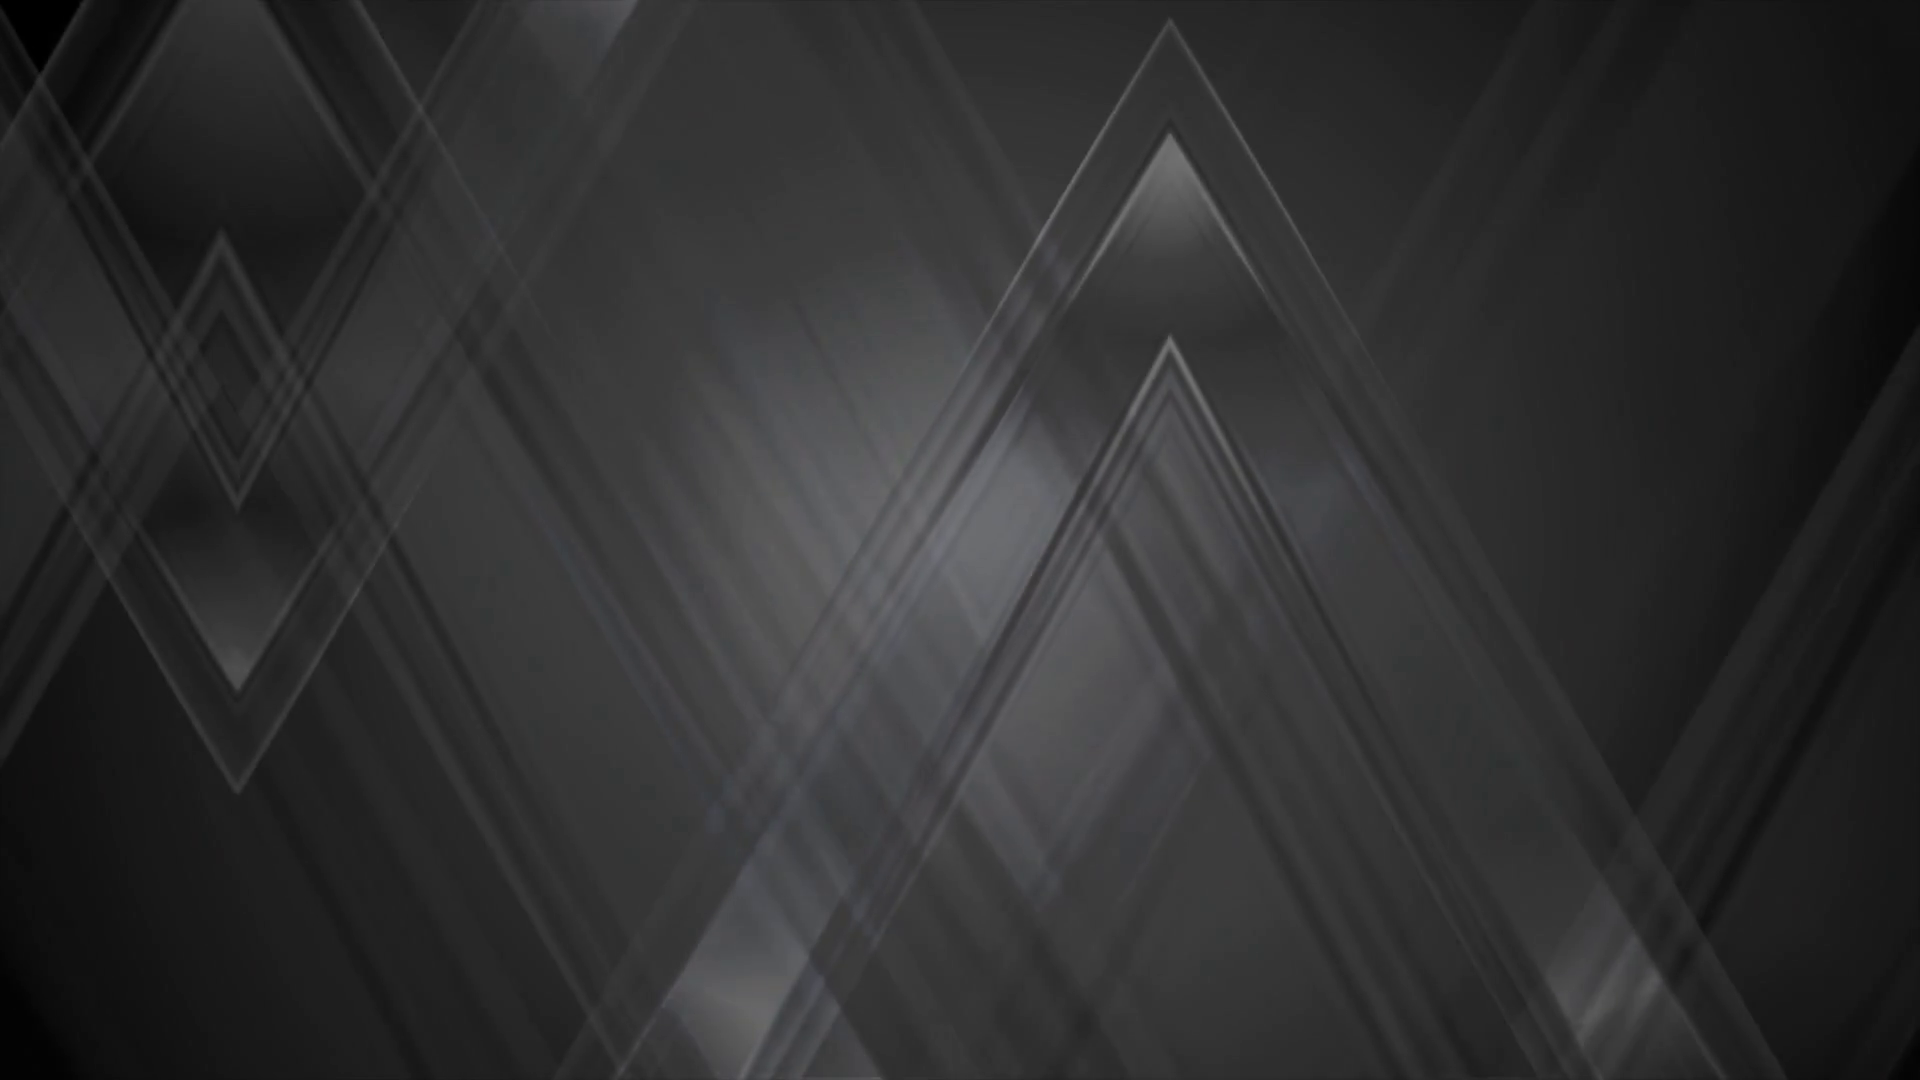 Black Abstract Tech Triangles Motion Background Video Animation Ultra Hd 4k 3840x2160 Motion Background Storyblocks